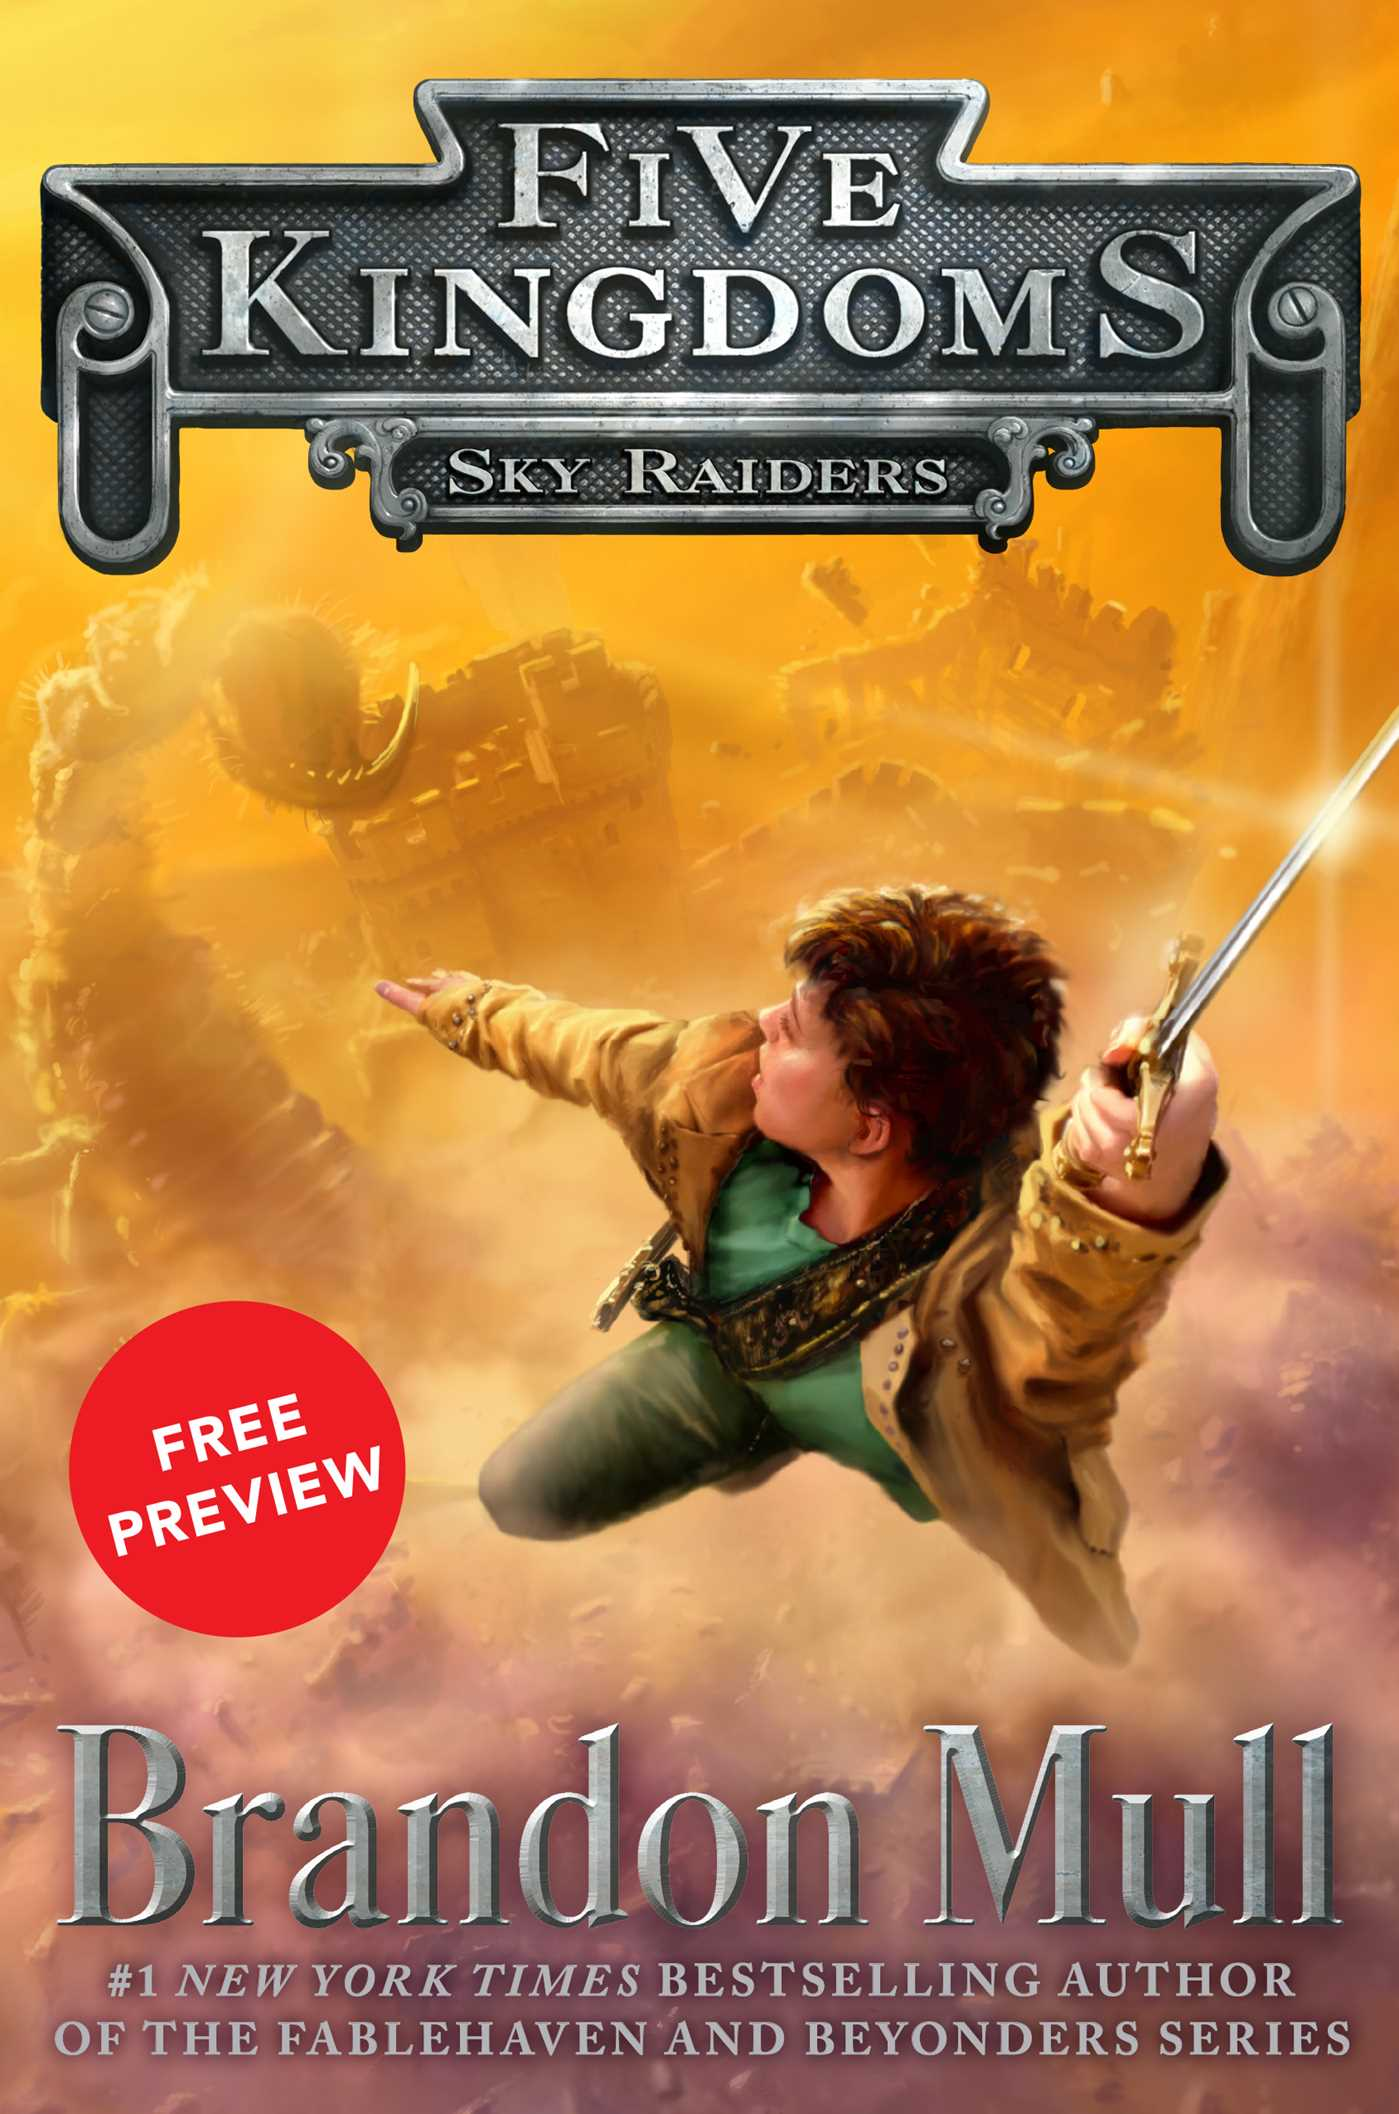 Sky-raiders-free-preview-edition-9781481425483_hr